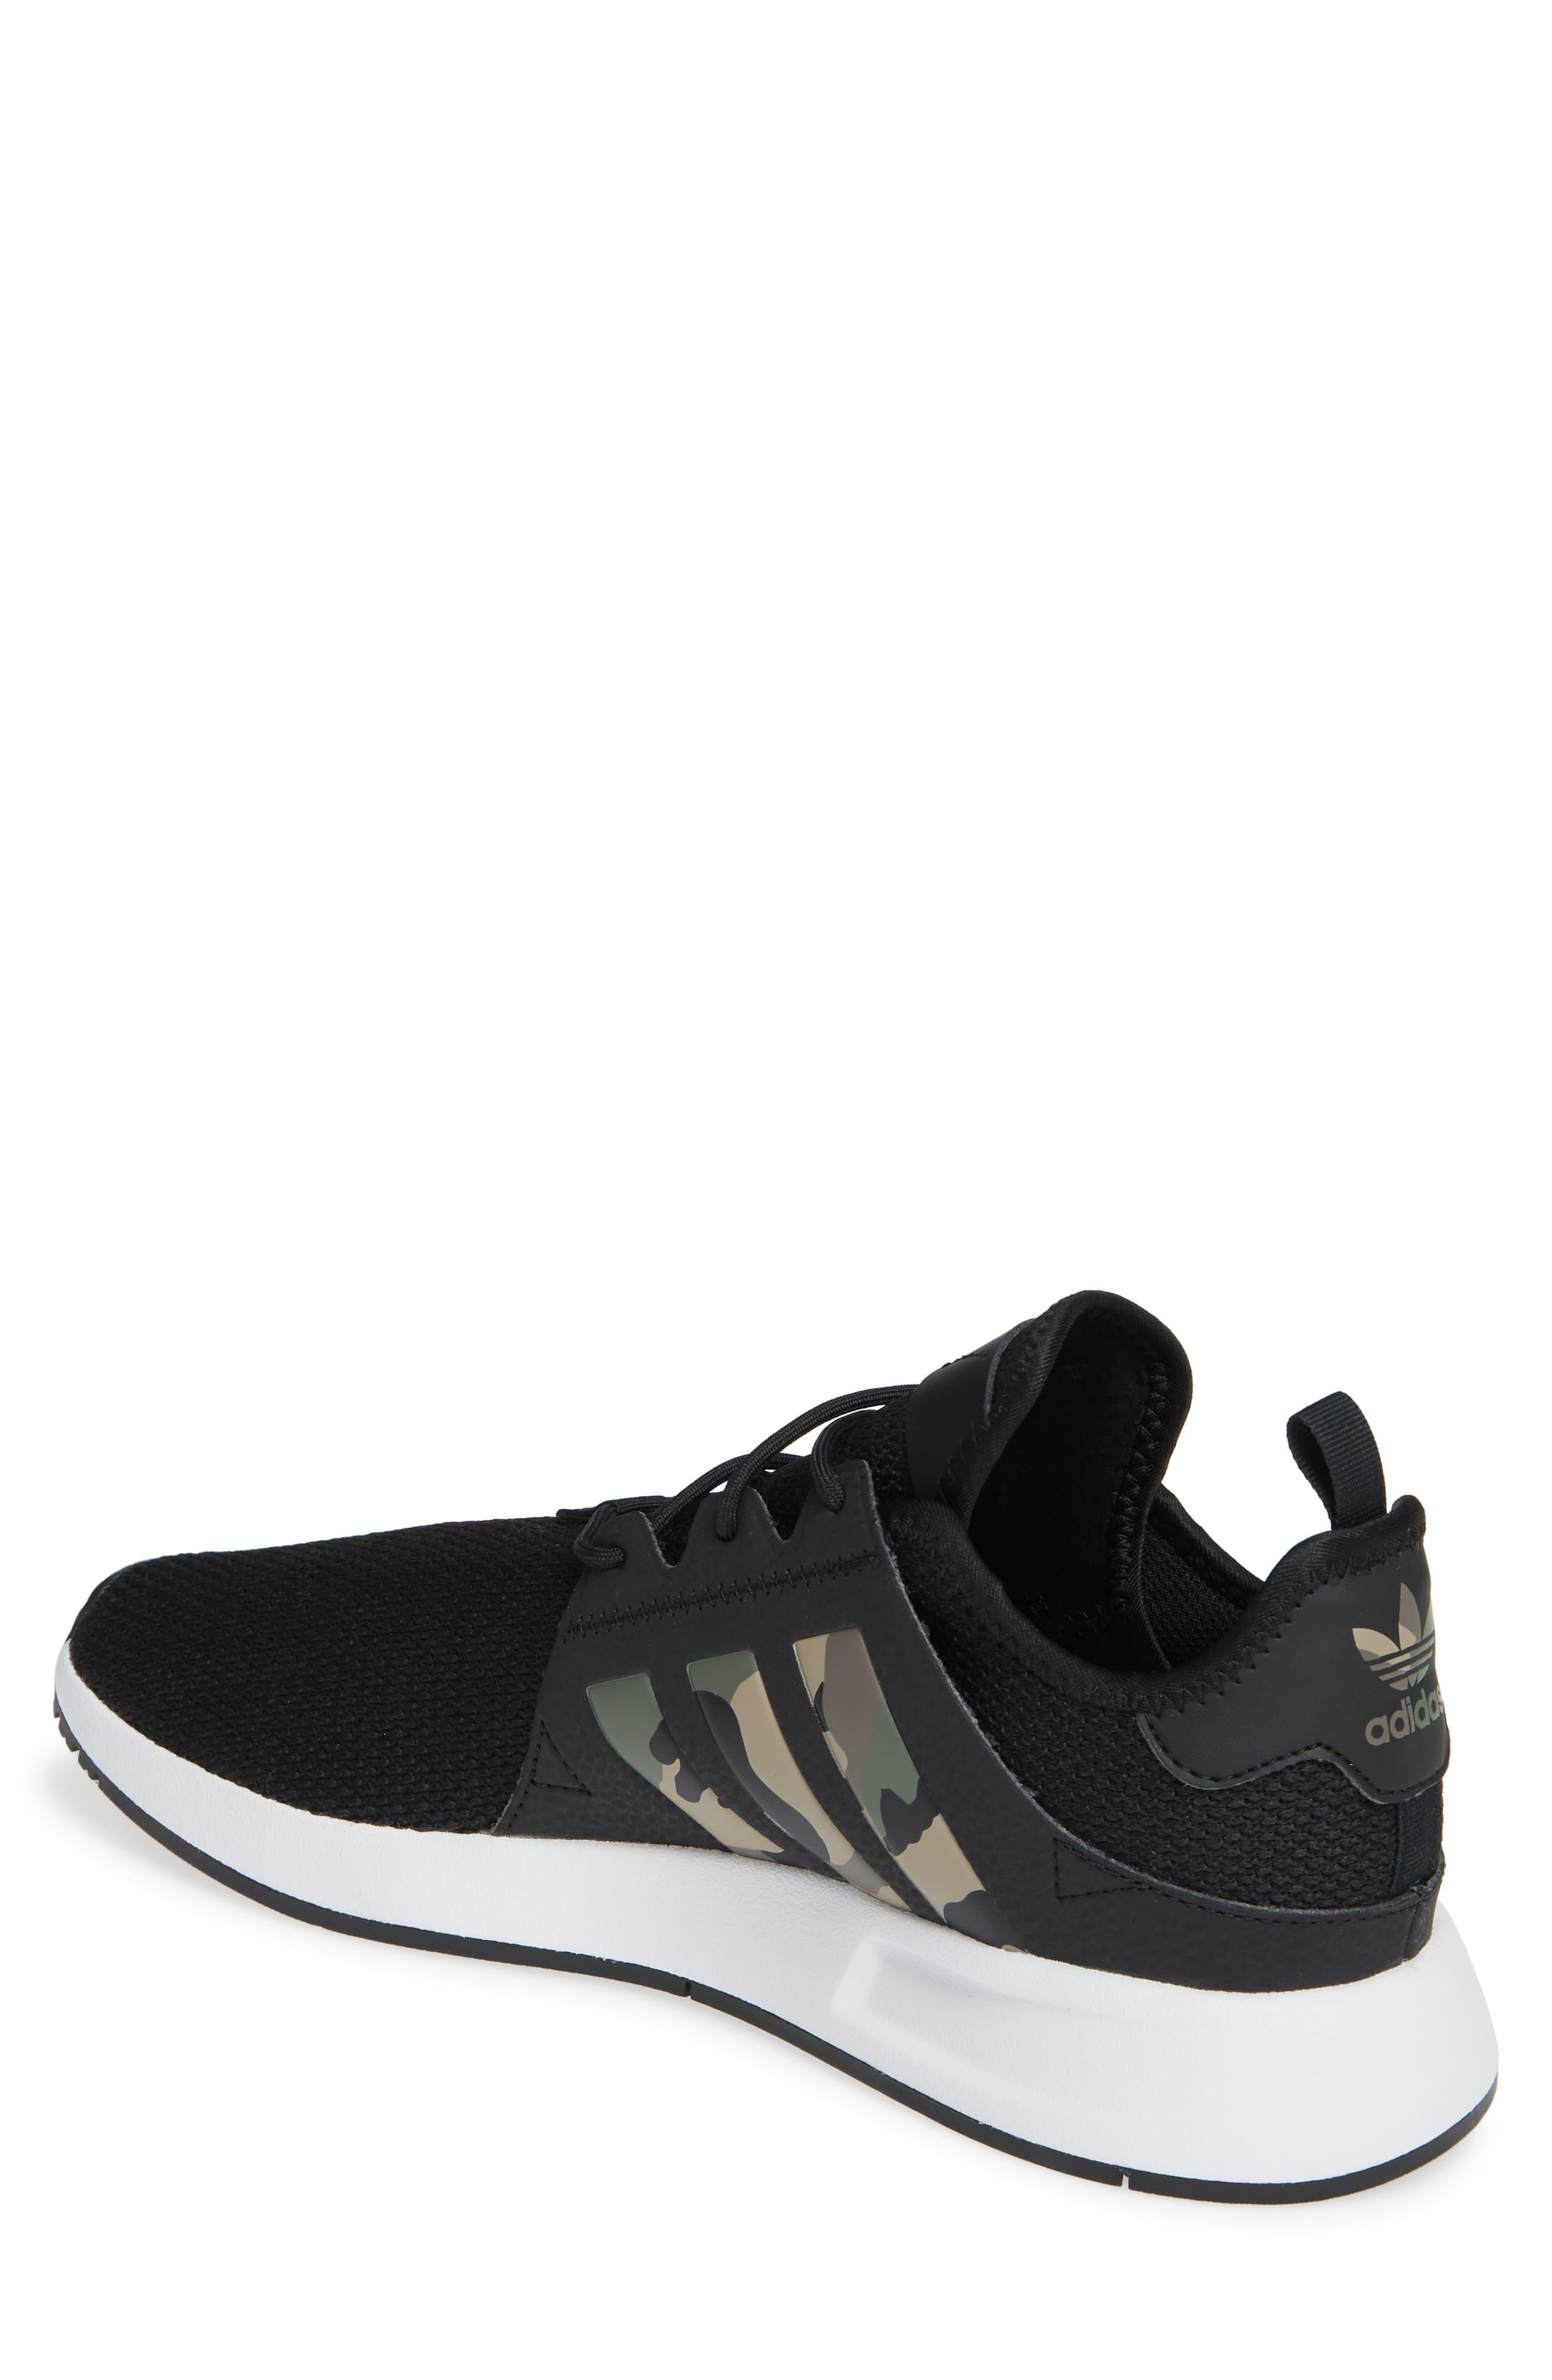 on sale 257b1 b7949 adidas X plr Core Black   Camo Shoes in Black for Men - Save 33% - Lyst